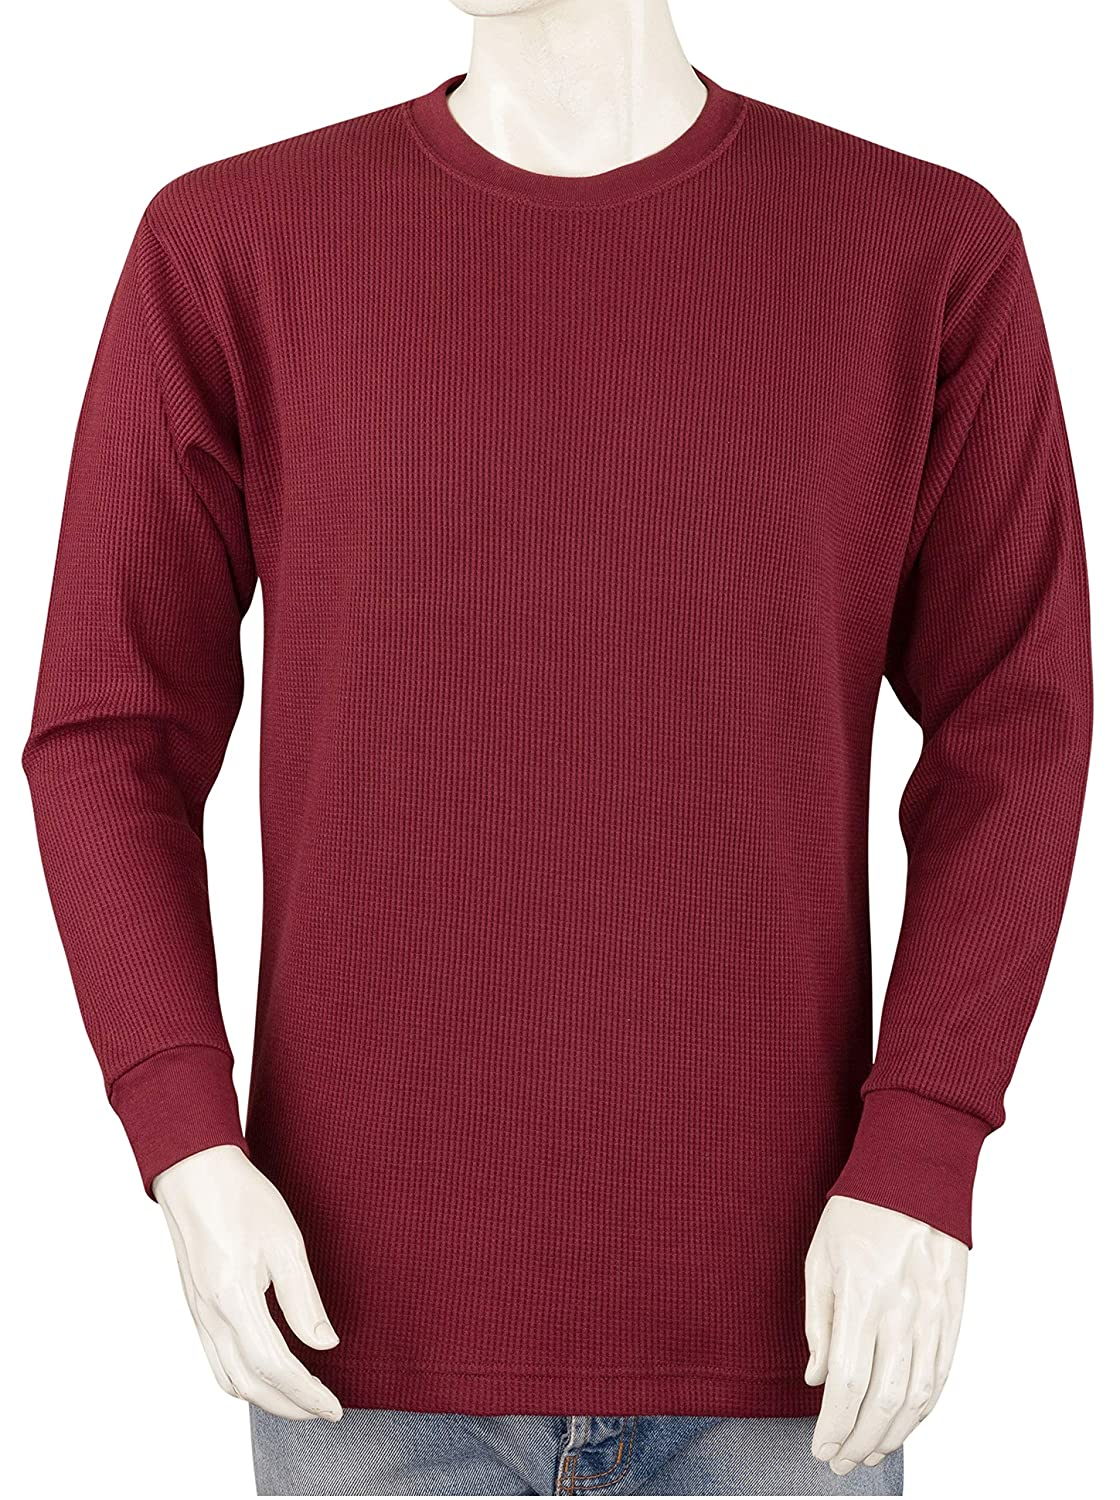 43c235dc244a Styllion Men's Thermal Shirt - Heavy Weight - Big and Tall & Regular Sizes  at Amazon Men's Clothing store: